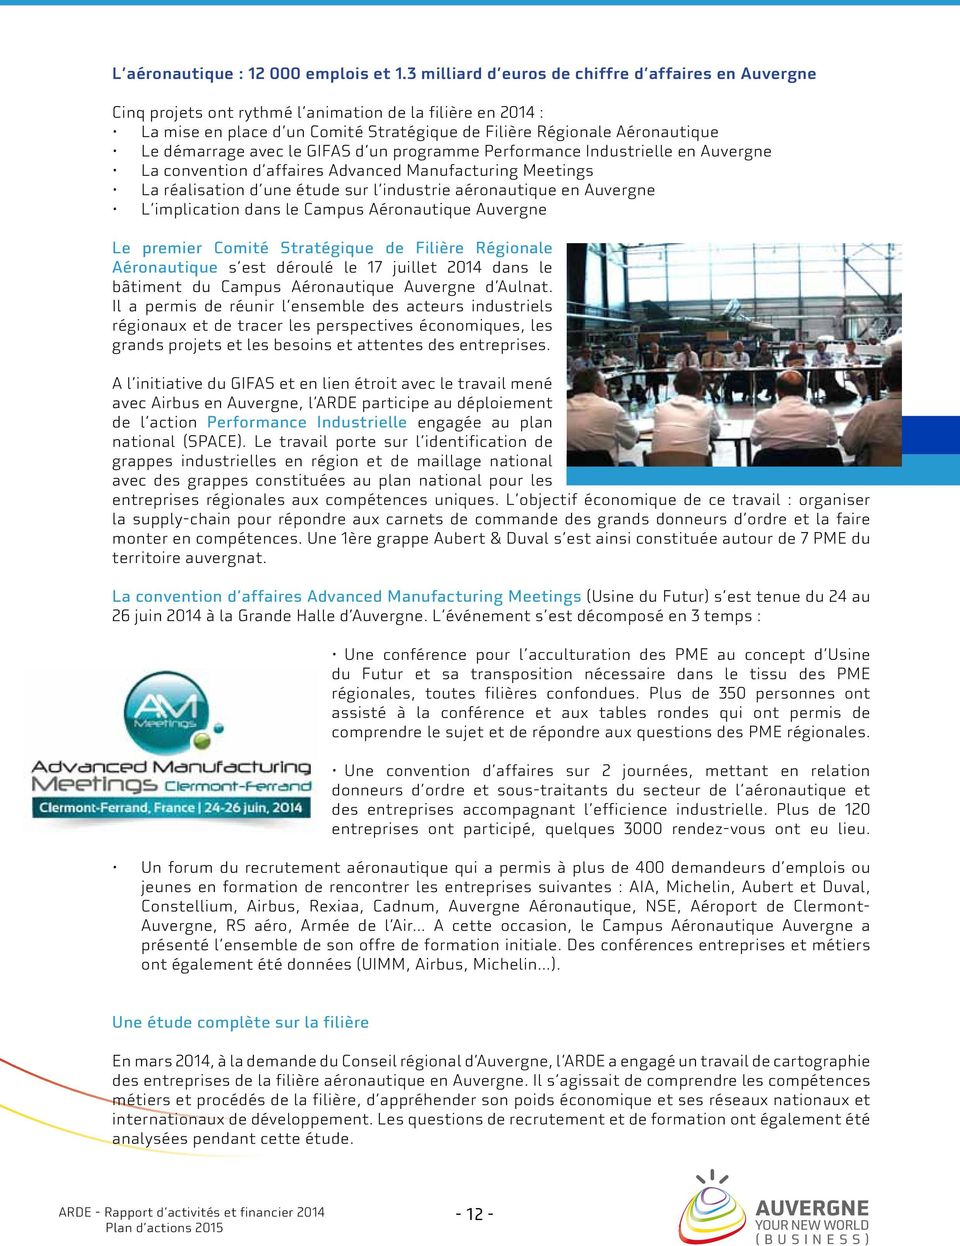 démarrage avec le GIFAS d un programme Performance Industrielle en Auvergne La convention d affaires Advanced Manufacturing Meetings La réalisation d une étude sur l industrie aéronautique en